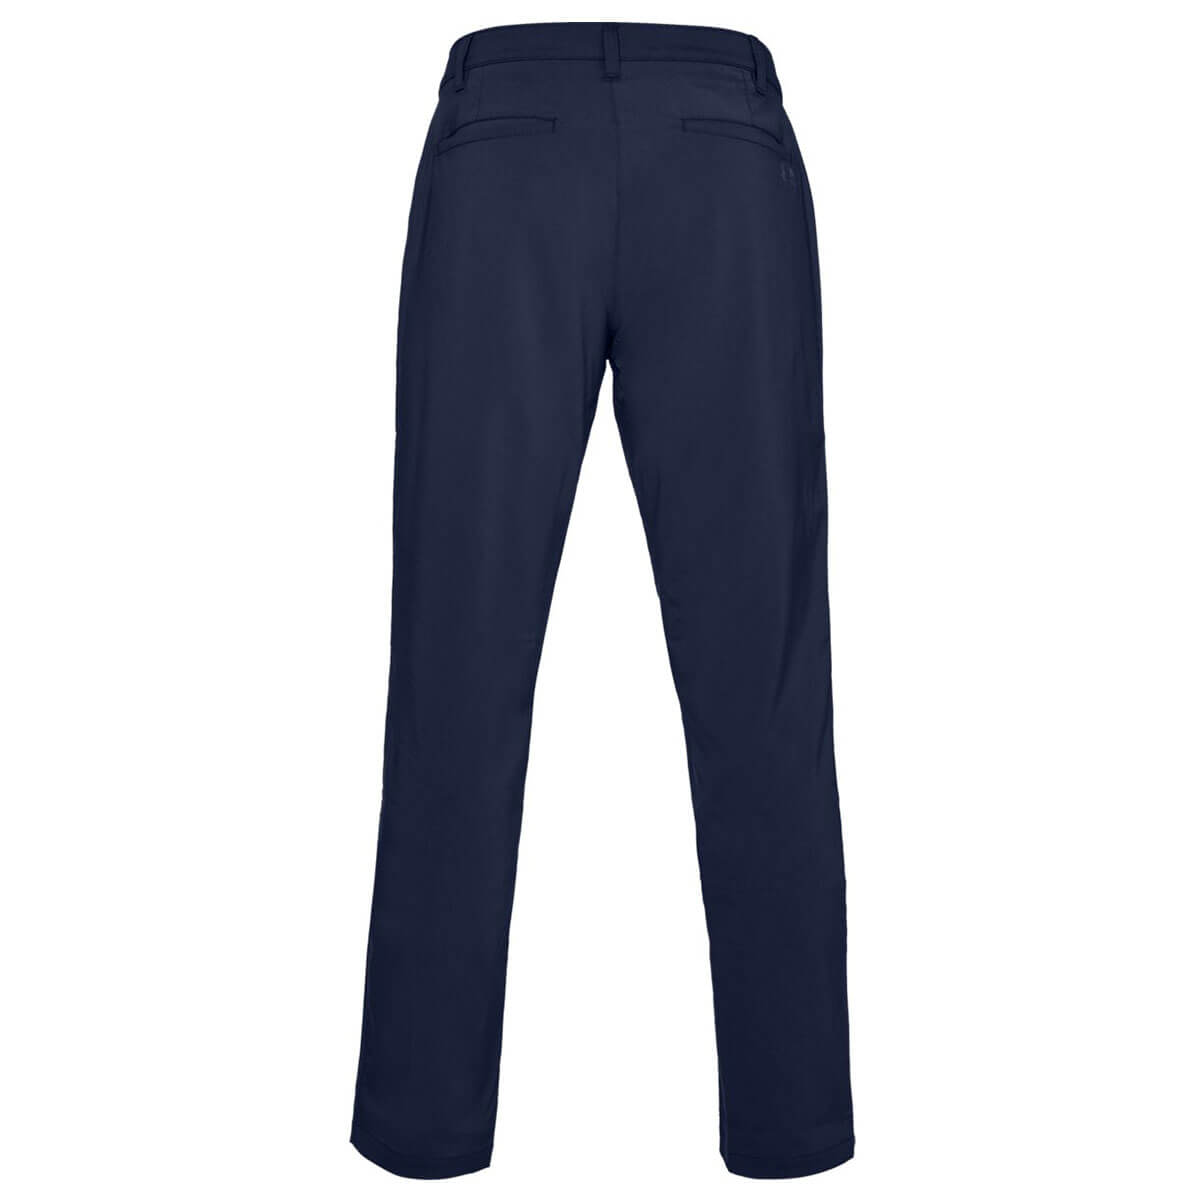 Under-Armour-Mens-2019-EU-Tech-Stretch-Straight-Golf-Trousers-30-OFF-RRP thumbnail 5